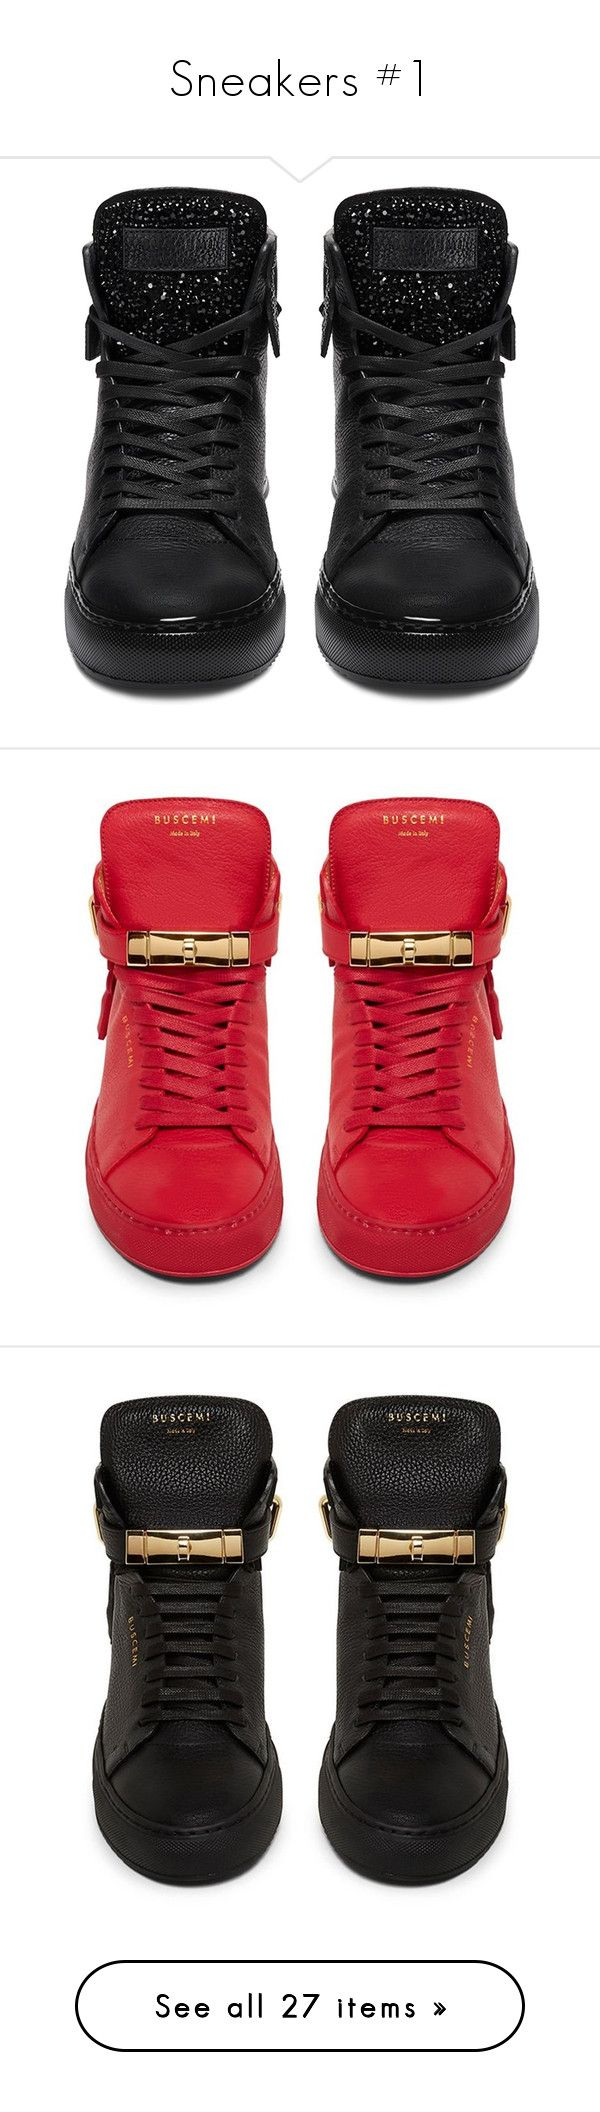 """Sneakers #1"" by hipster9891 ❤ liked on Polyvore featuring shoes, sneakers, buscemi sneakers, high-top sneakers, hi tops, black hi tops, kohl shoes, red shoes, red sneakers and red trainers"